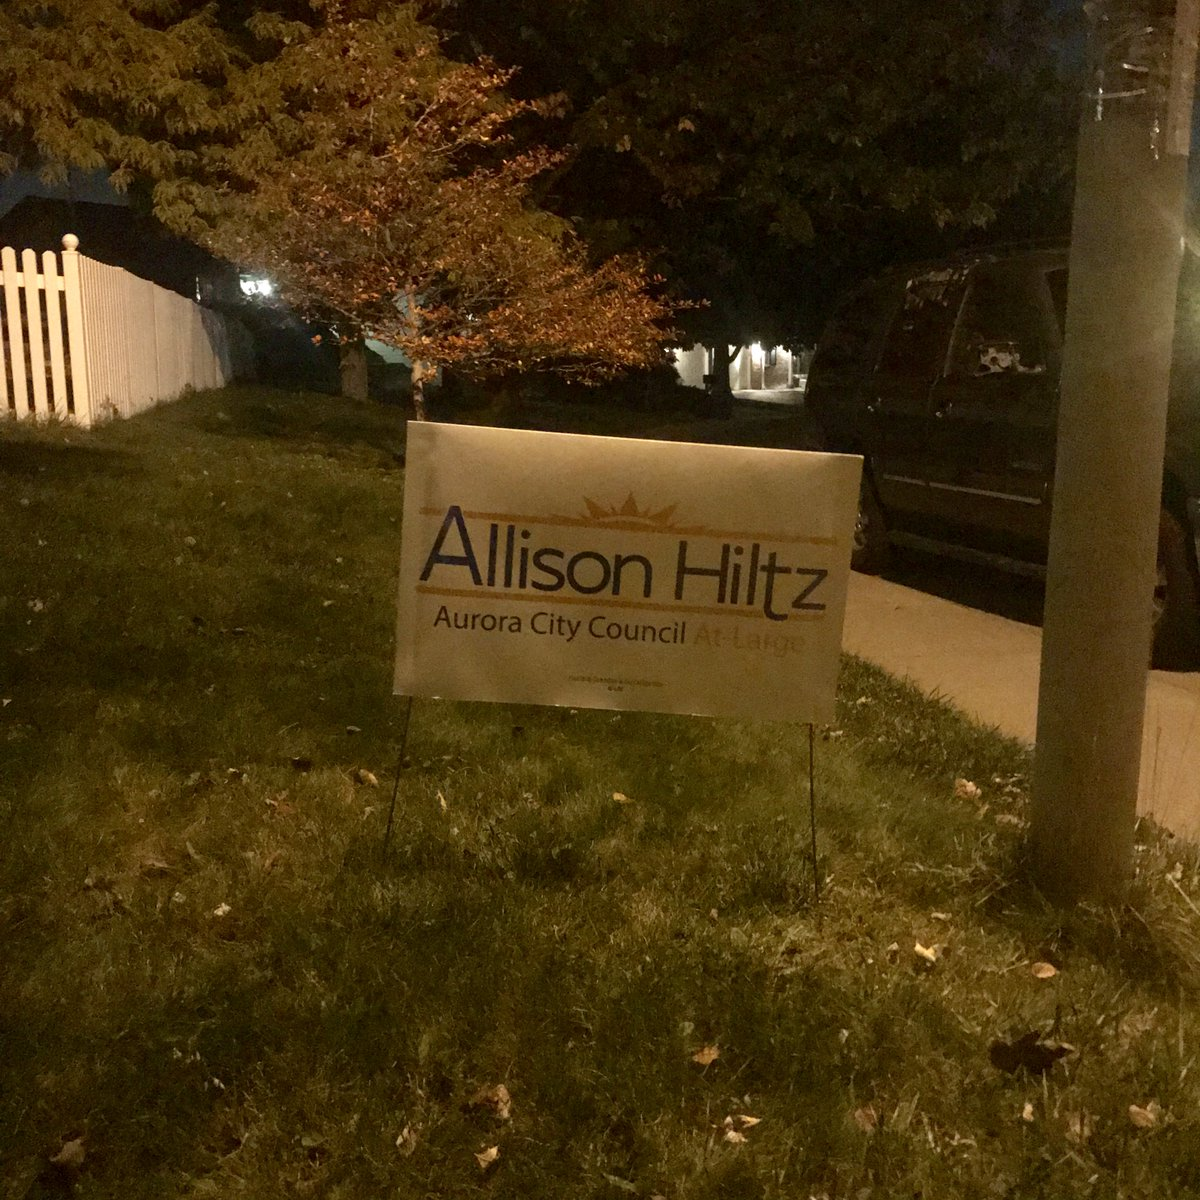 That awesome moment when you do Friday night sign drop offs and find your sign in the neighborhood, already. #grassroots <br>http://pic.twitter.com/qeAMkvTF97